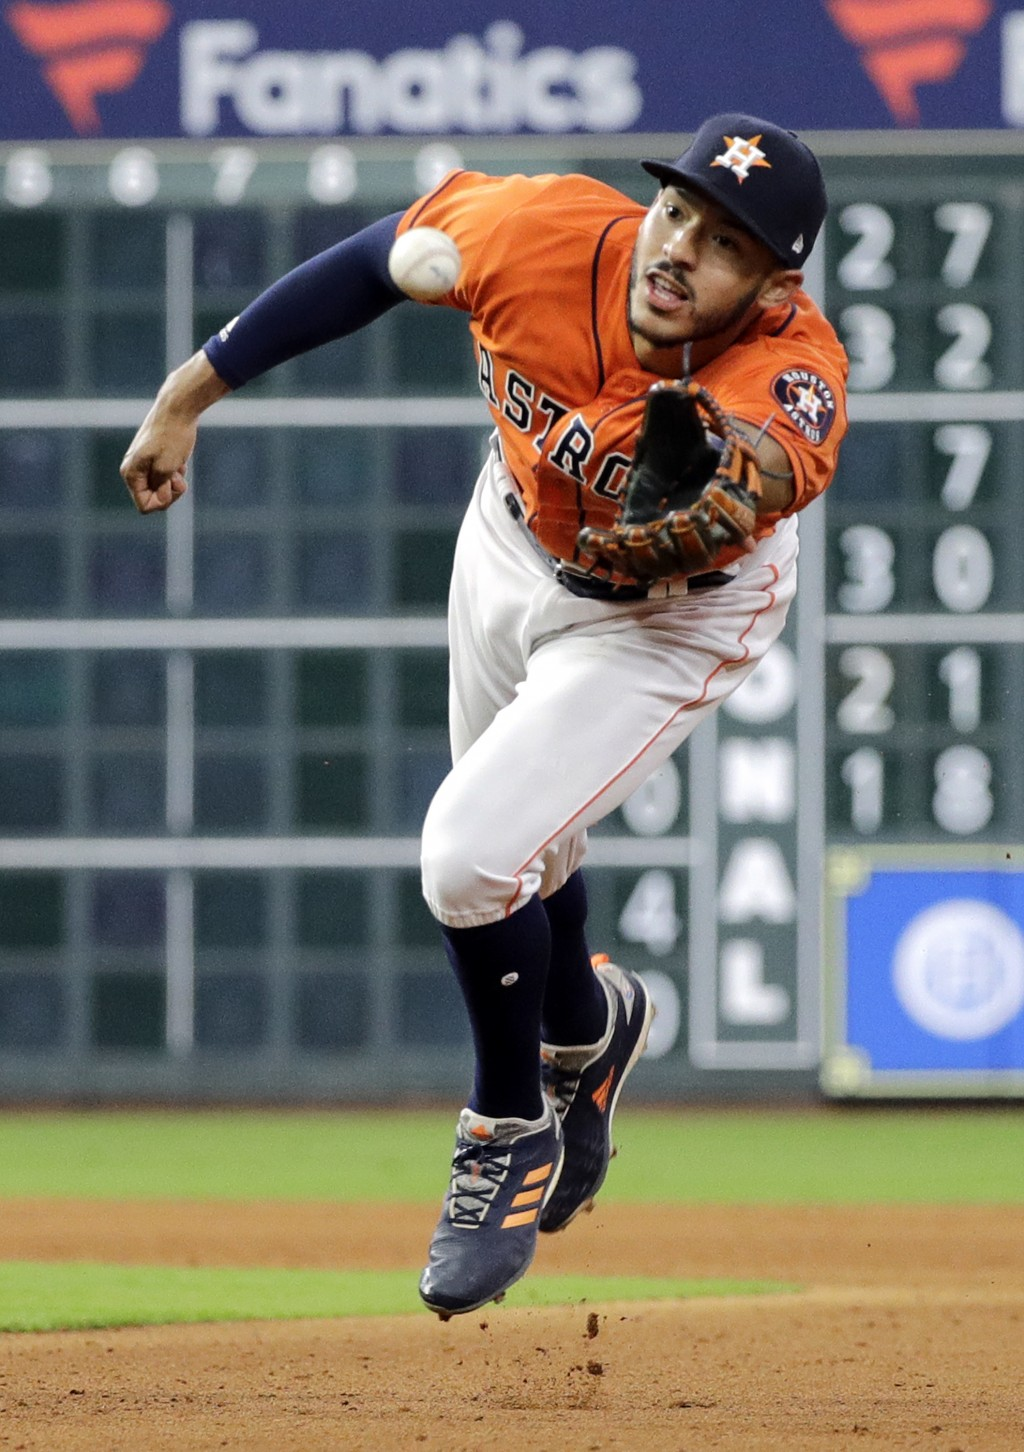 Houston Astros shortstop Carlos Correa tosses the ball with his glove to first baseman Yuli Gurriel after fielding a ground ball by Texas Rangers' Nom